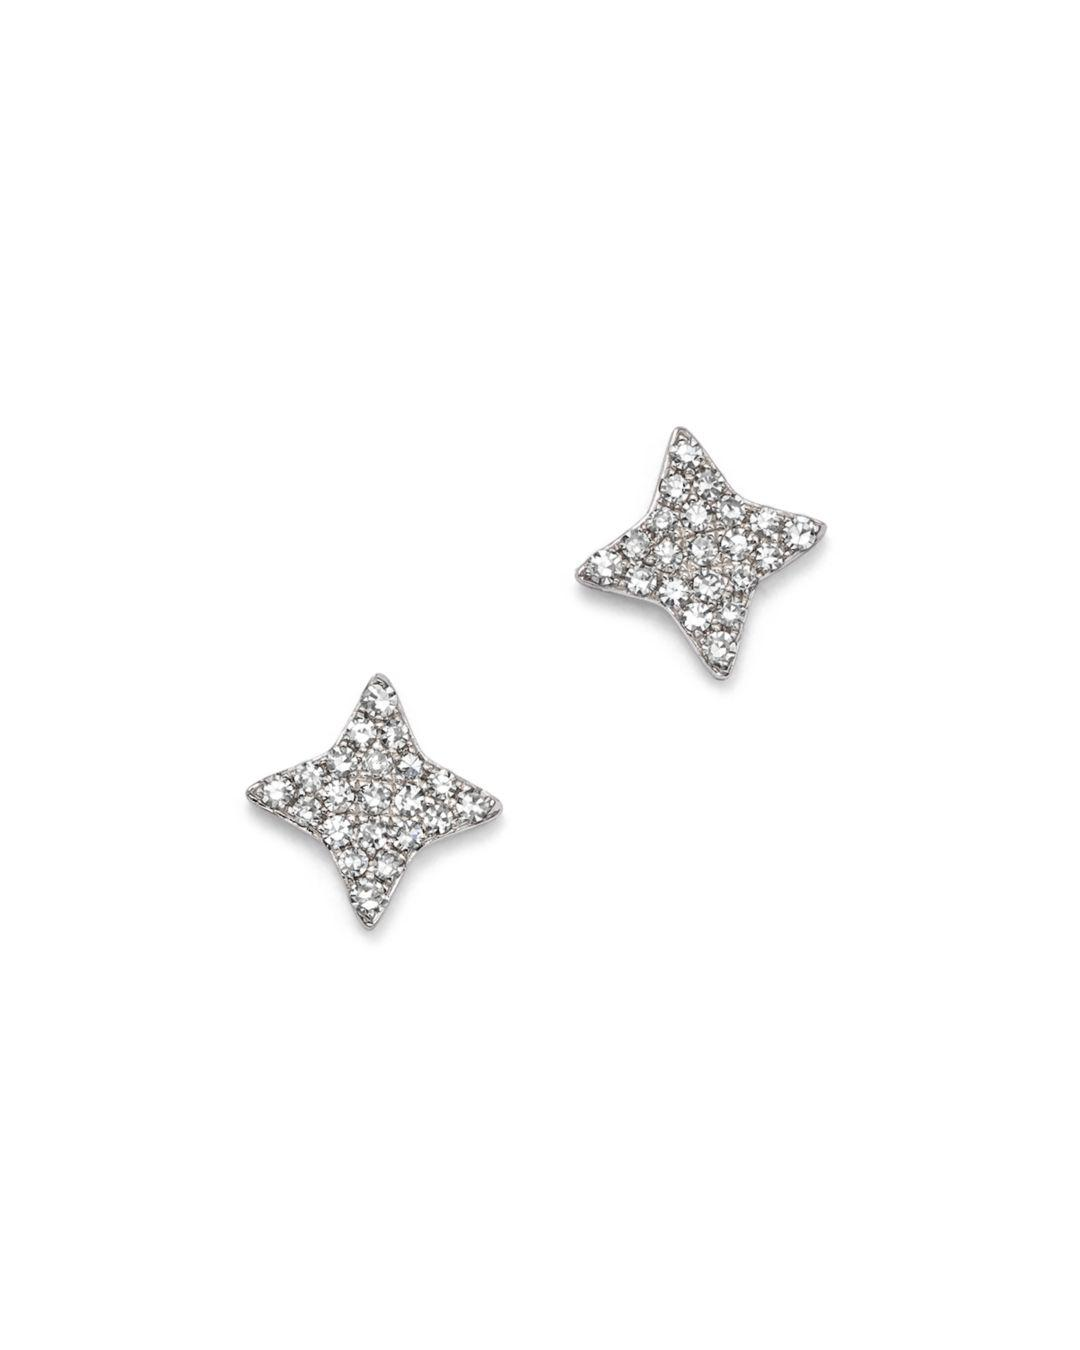 Kc Designs Women S 14k White Gold Small Starburst Diamond Stud Earrings